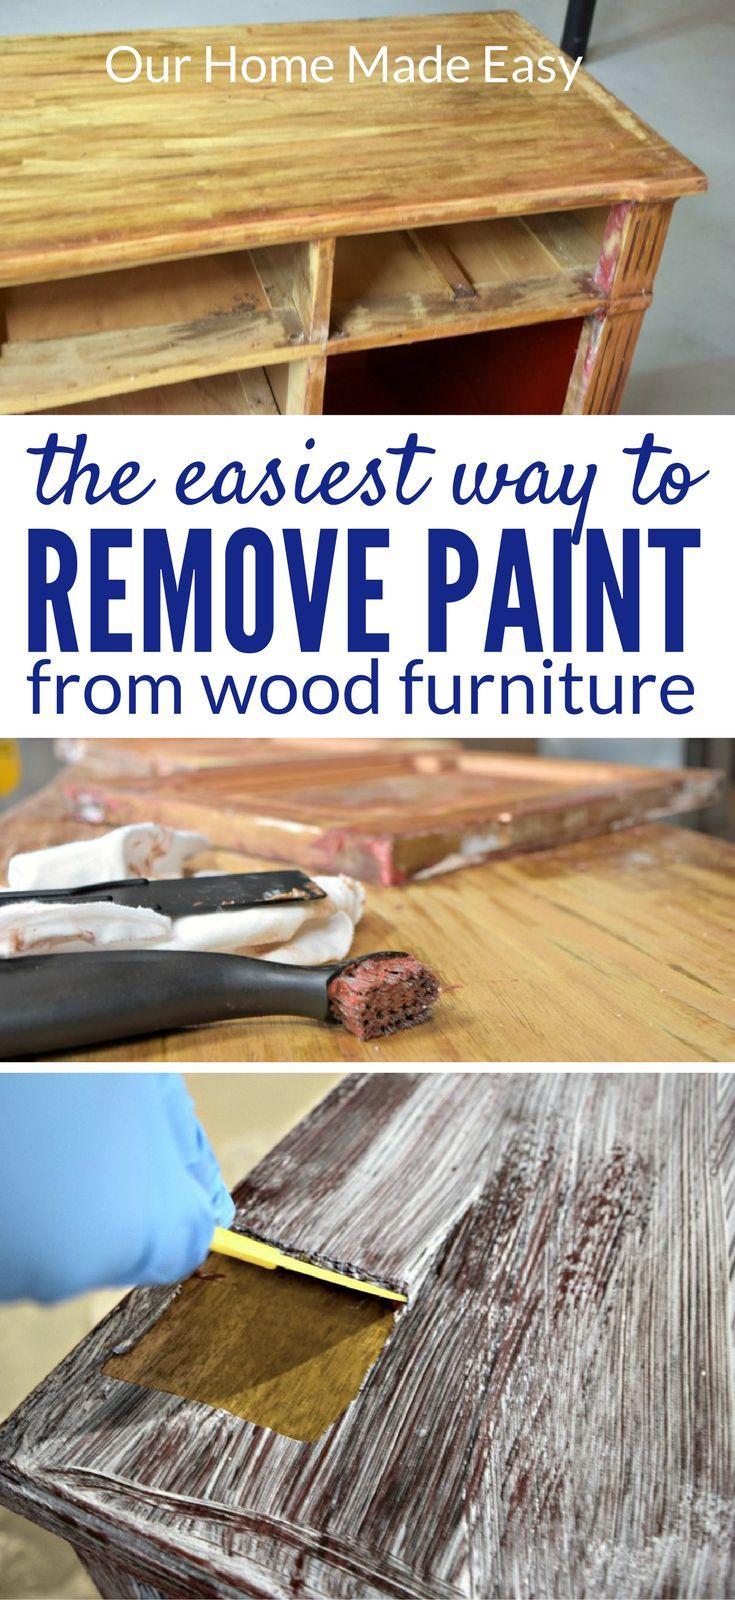 How To Easily Remove Paint U0026 Varnish From Old Furniture!   Remove Paint, Wood  Furniture And Woods